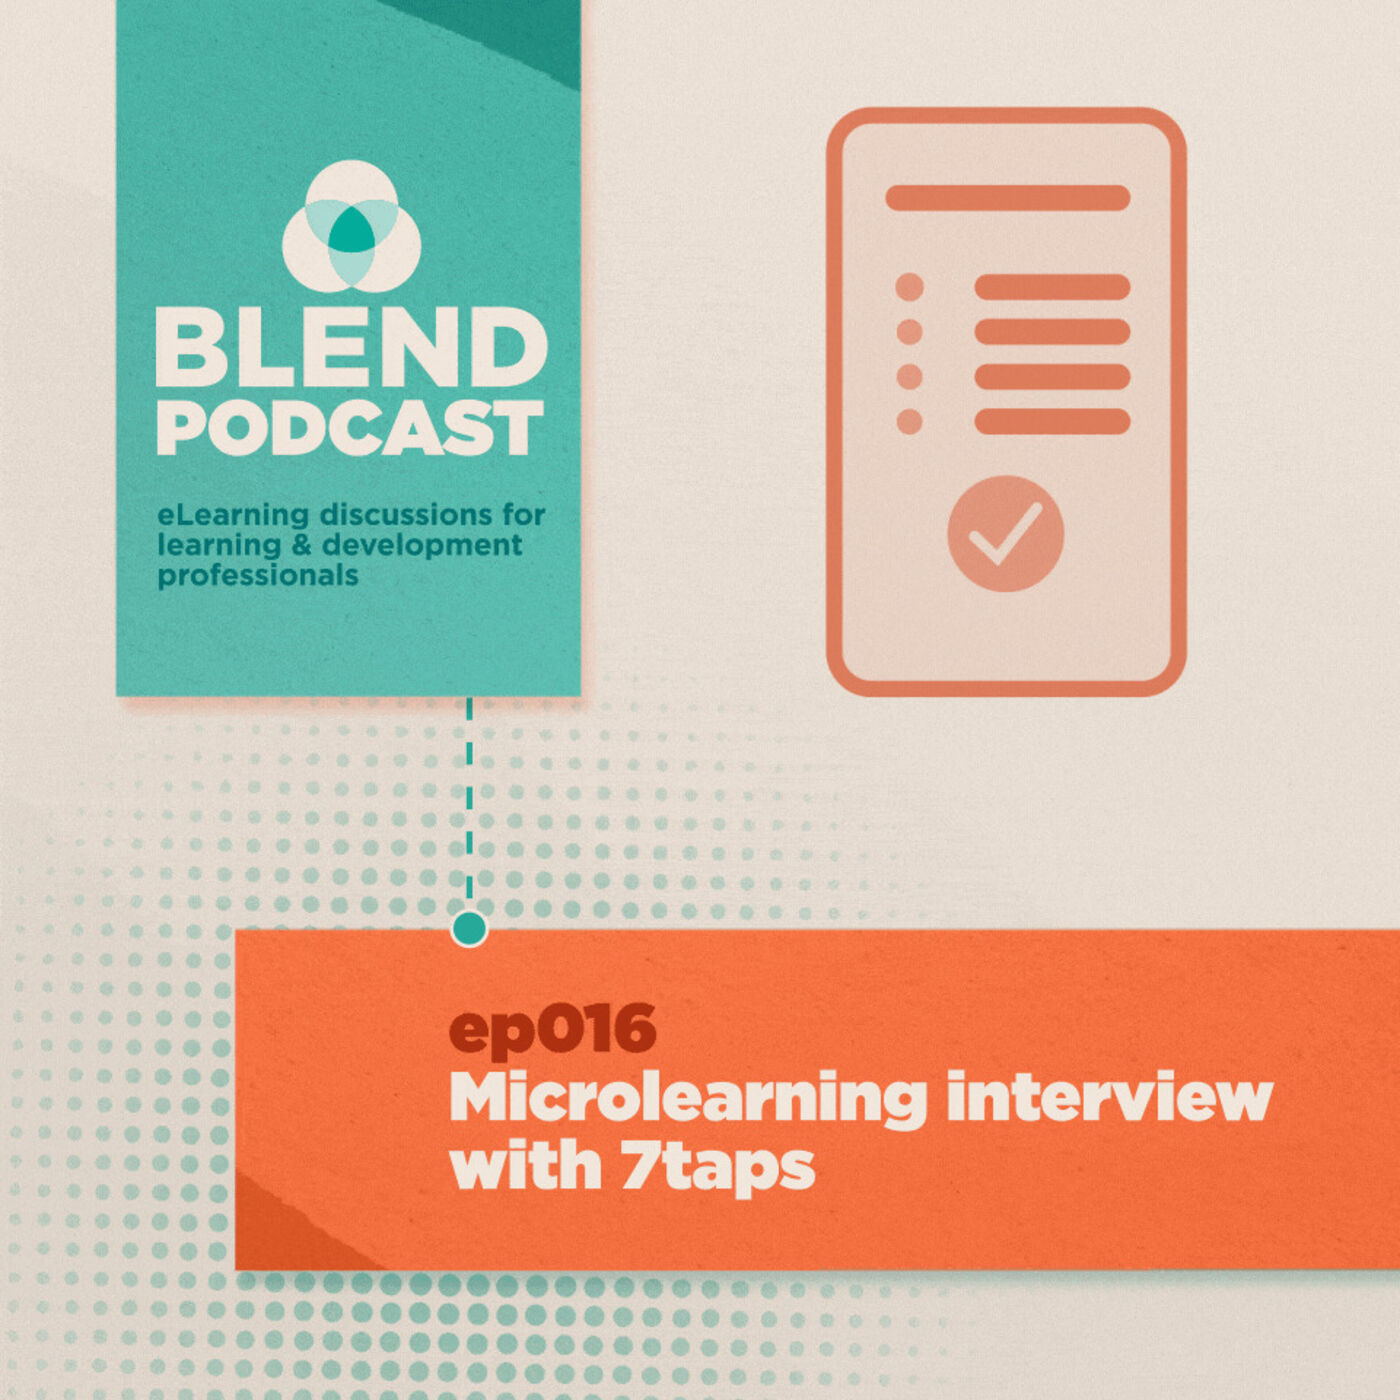 #16 Microlearning with 7taps